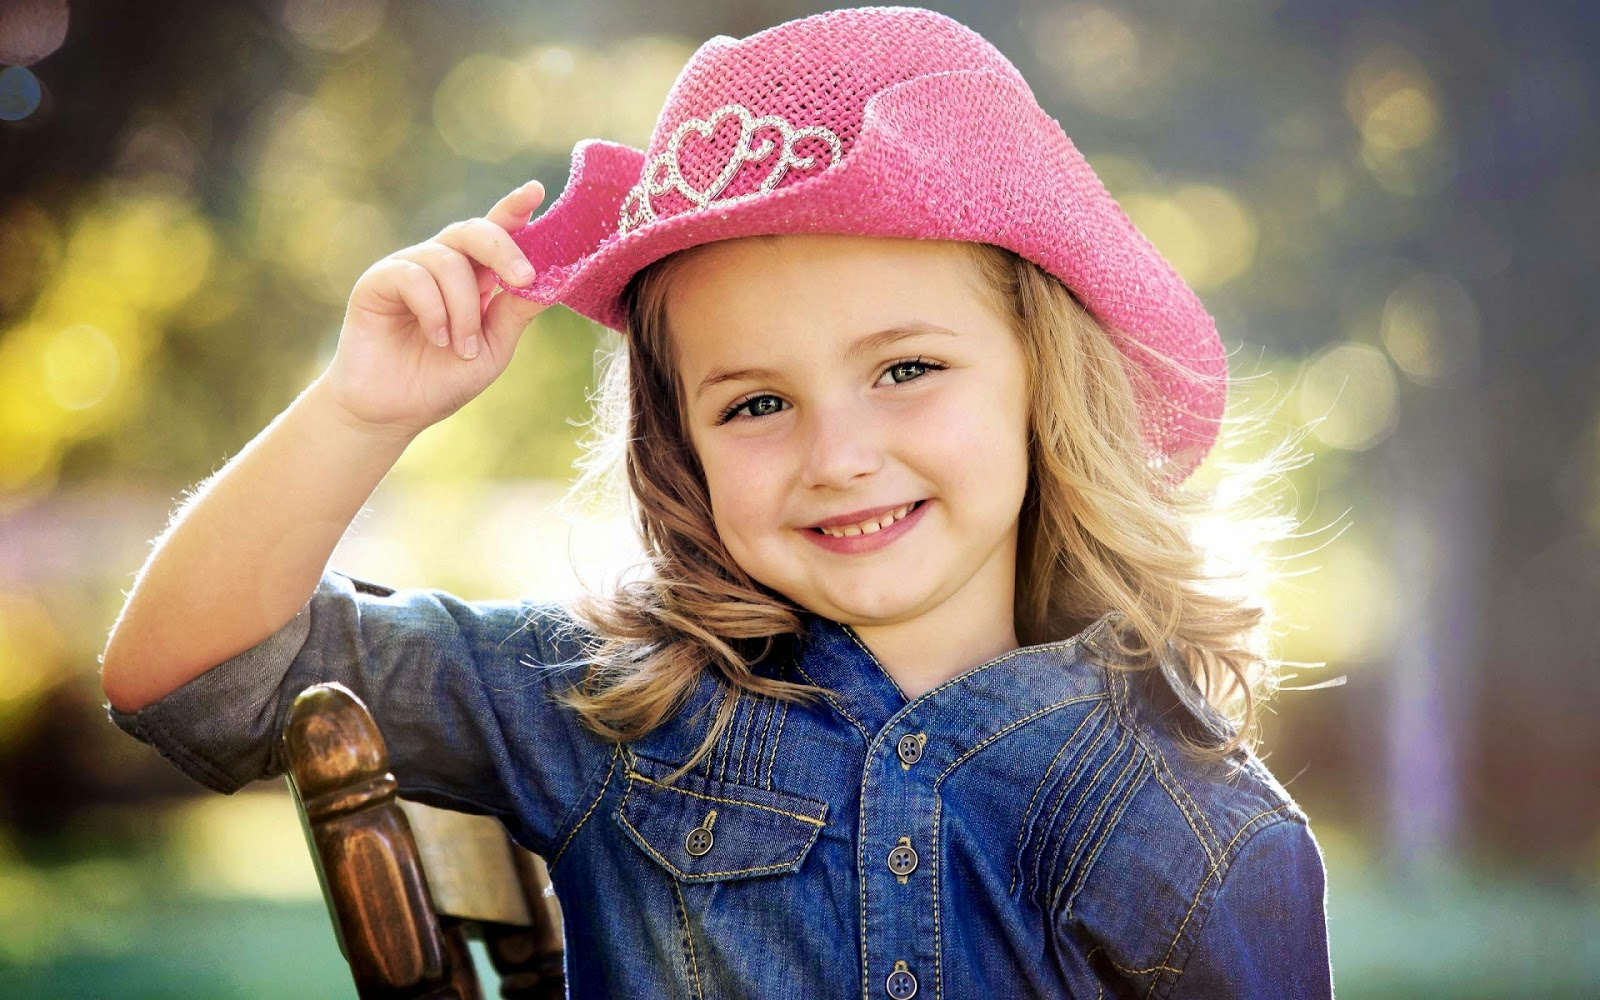 Jango wallpapers most beautiful smiling baby girls hd pics - Sweet baby girl wallpaper pictures ...